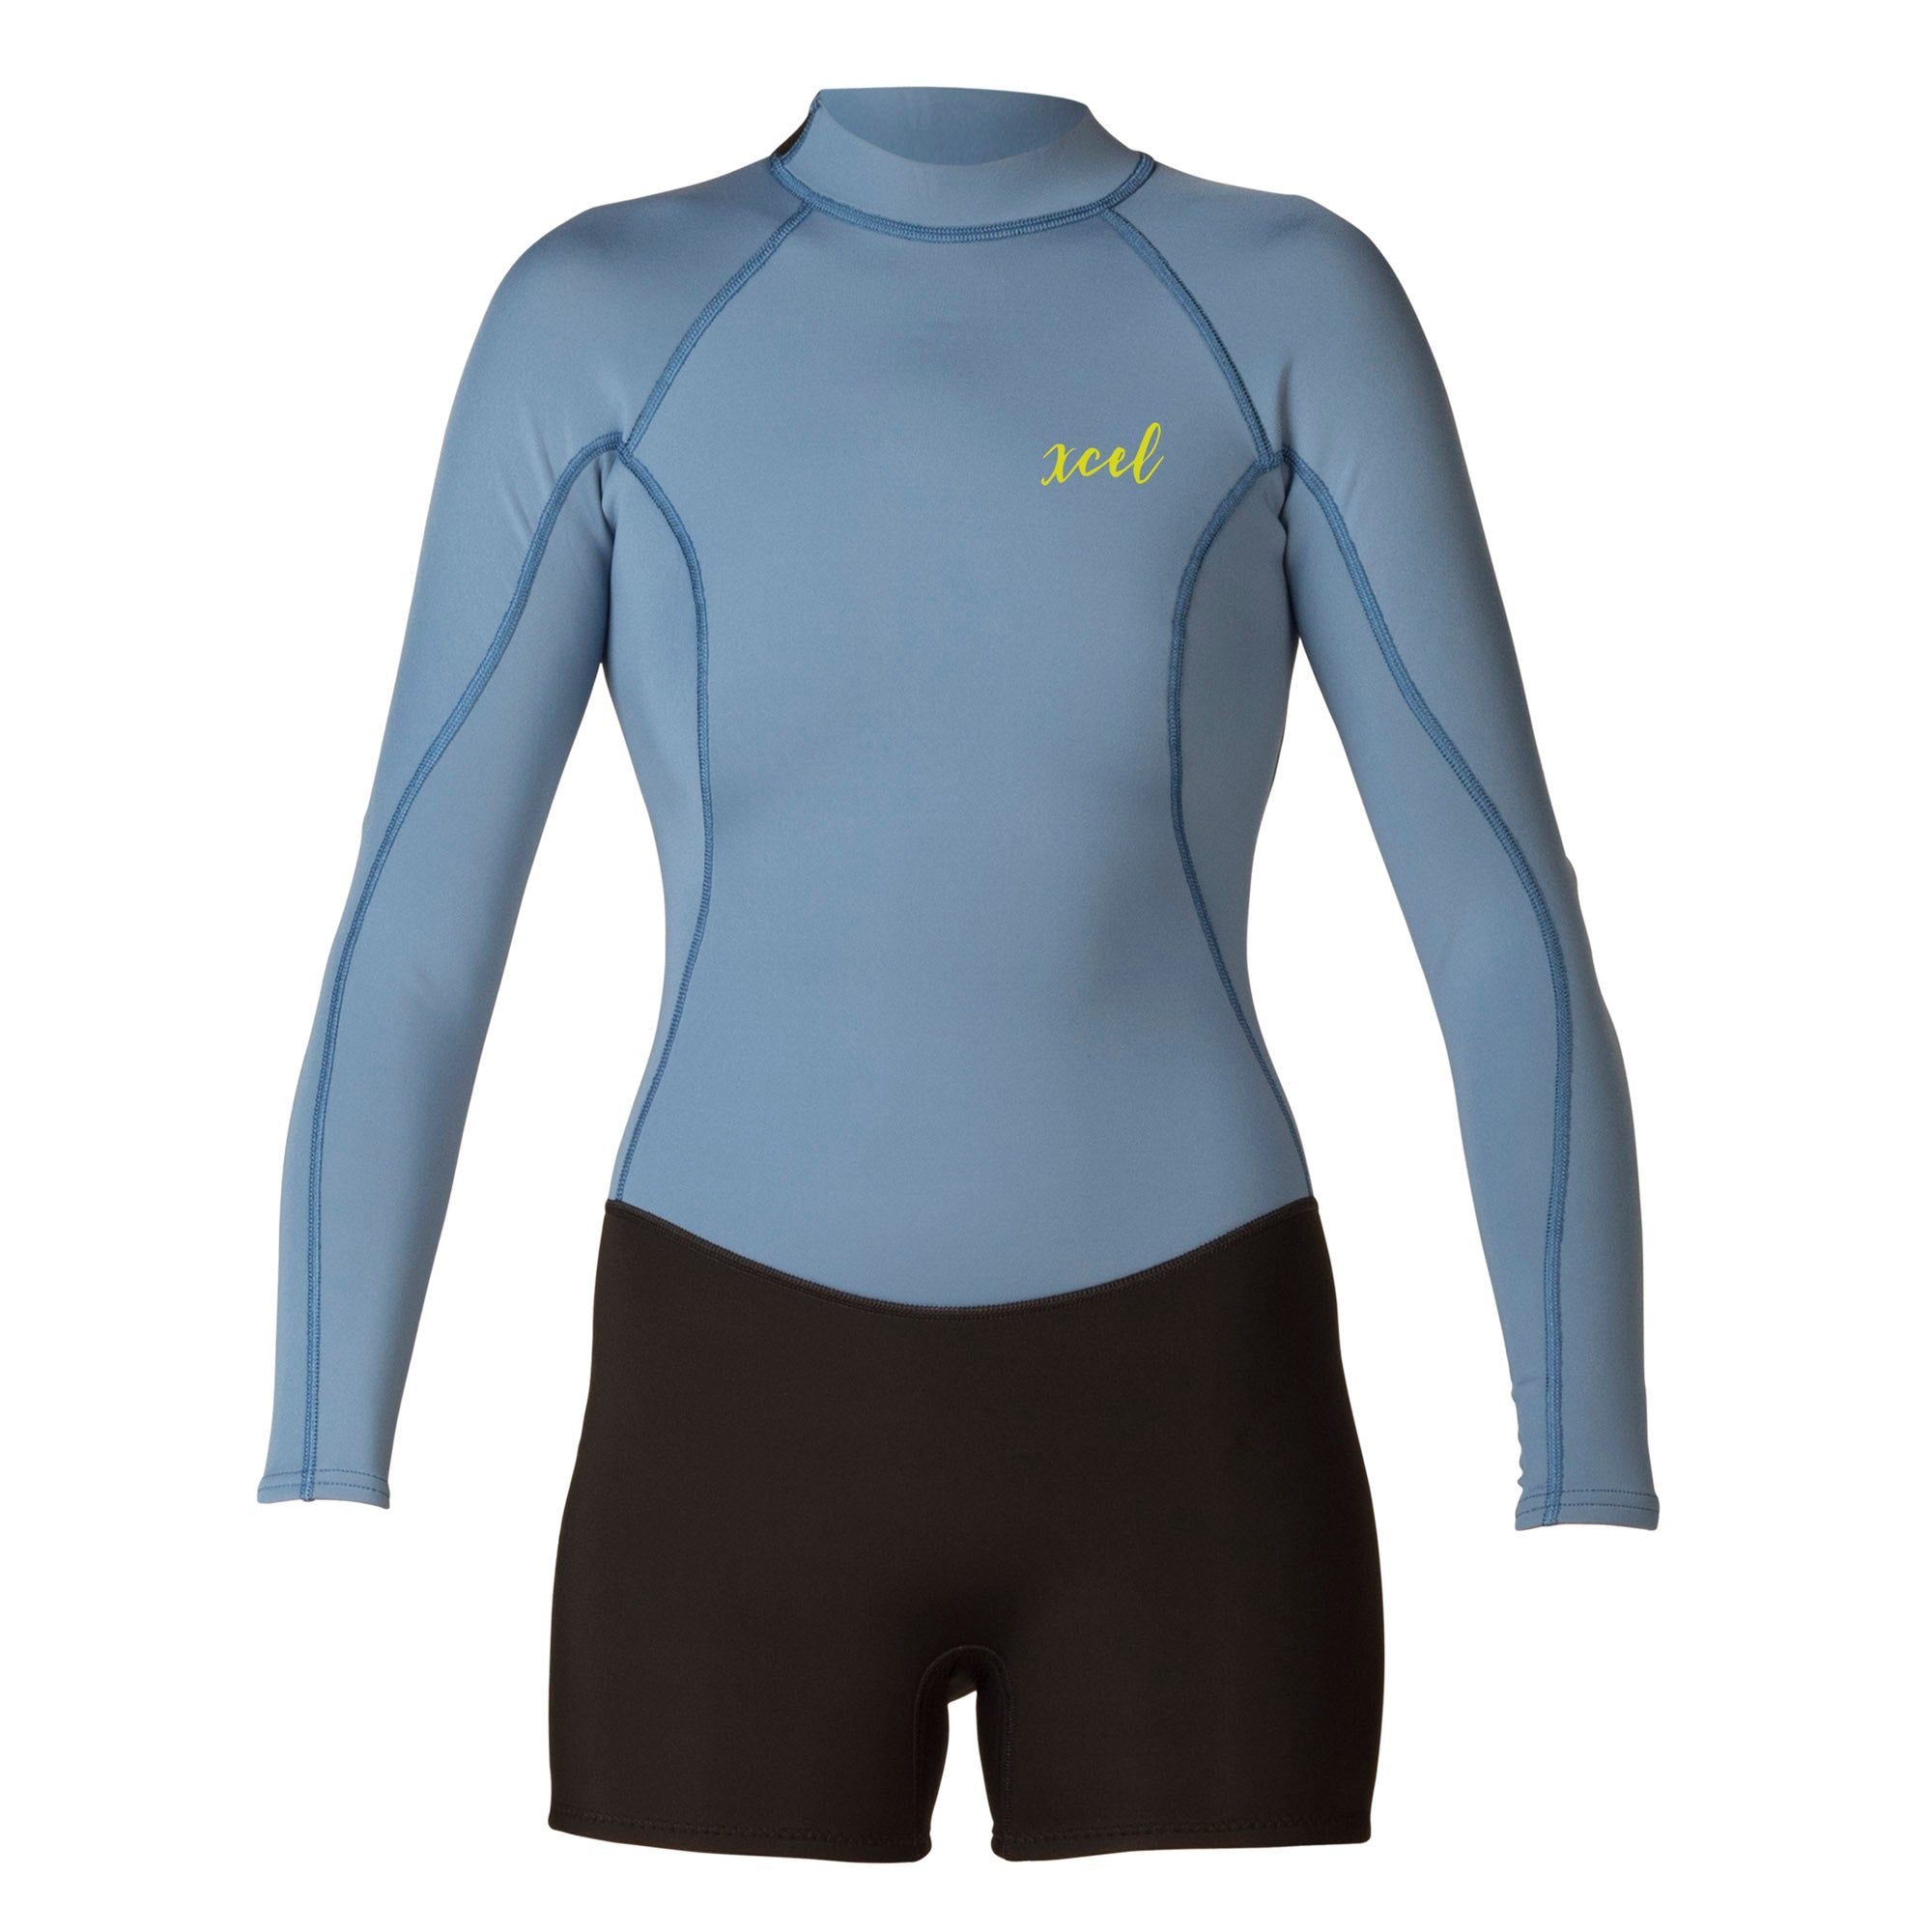 d279106012 XCEL WOMEN S AXIS 2 1mm L S SHORTY SPRINGSUIT – Stewart Surfboards